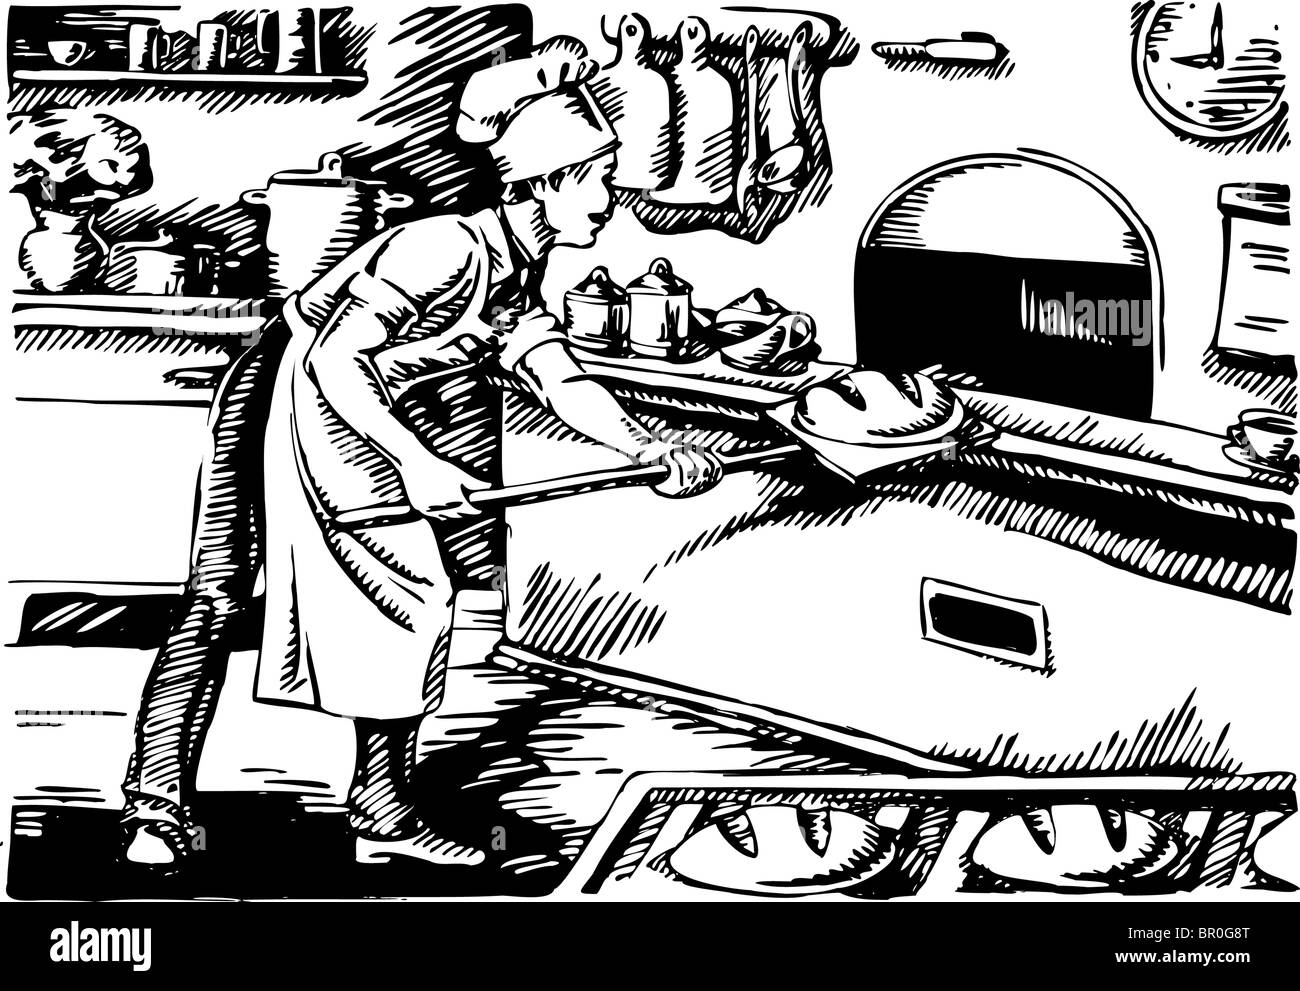 Man baking bread in an old fashioned oven black and white - Stock Image